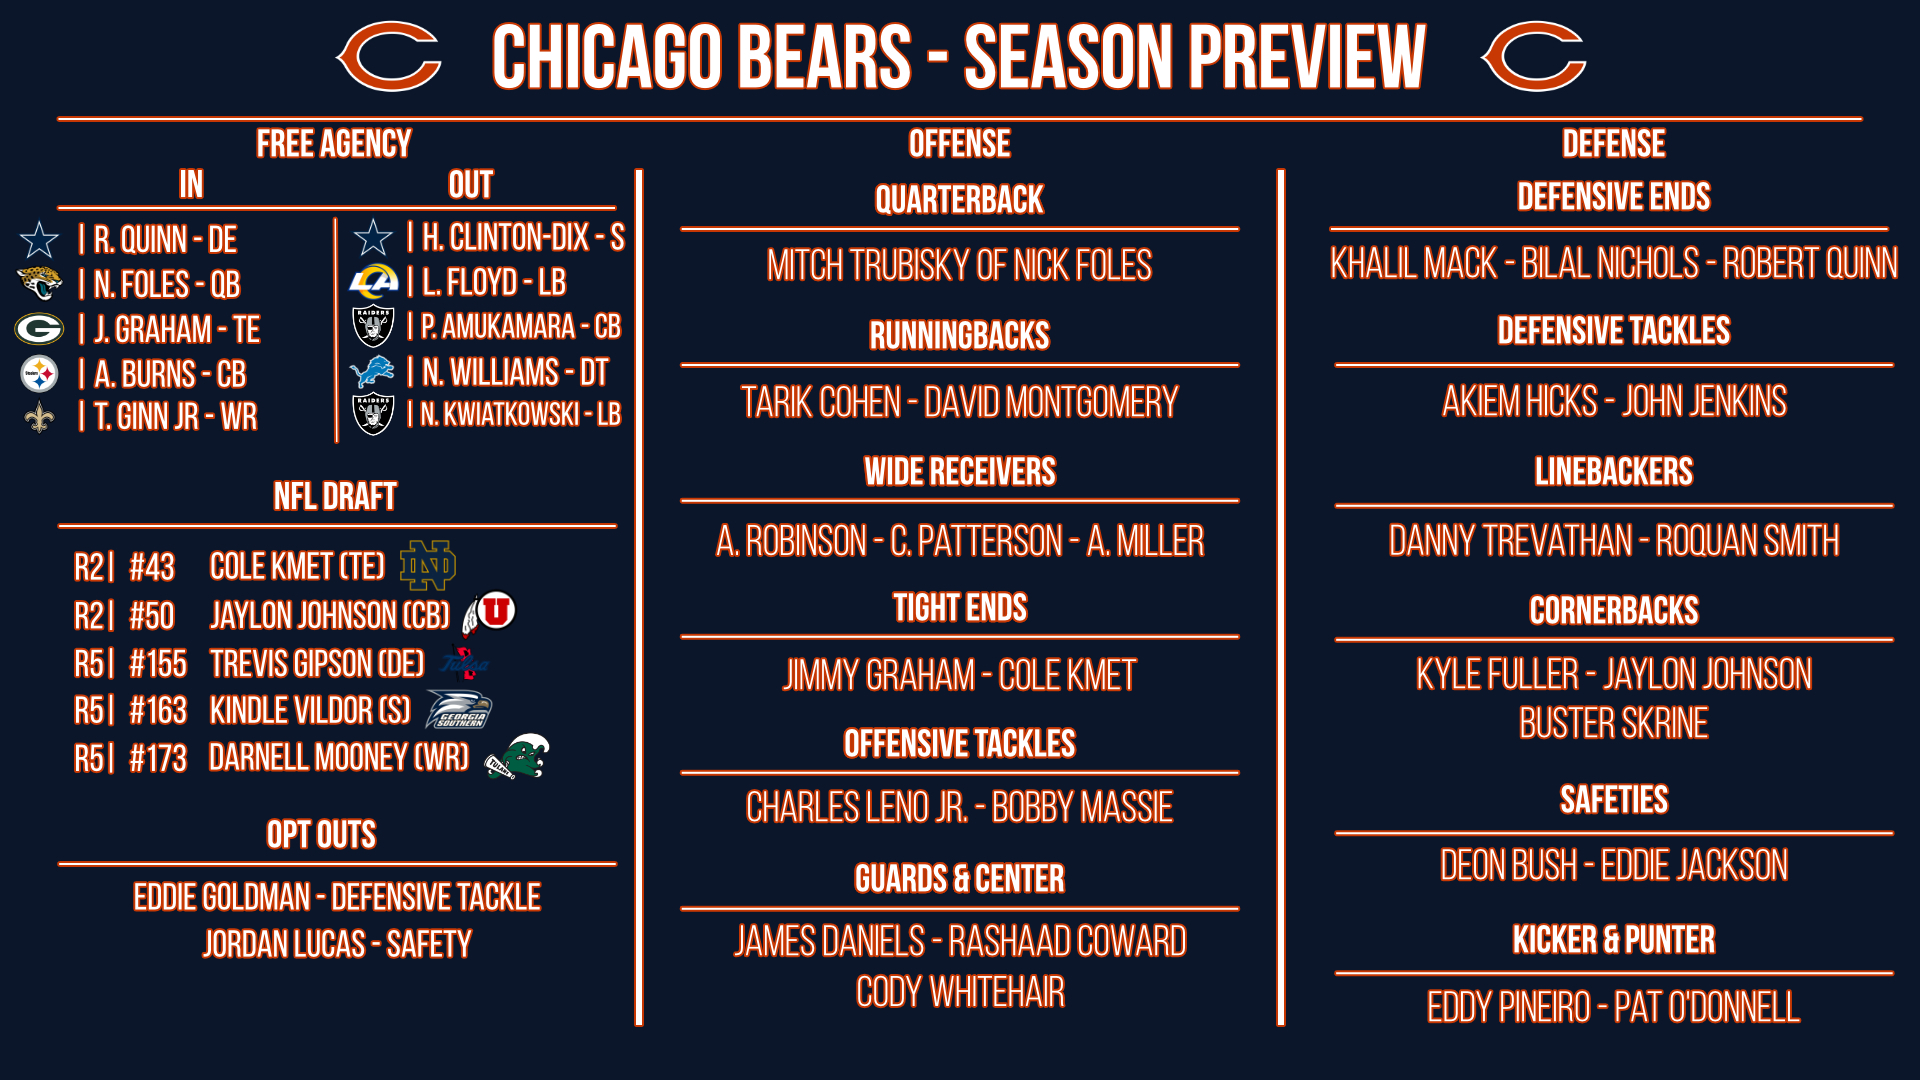 Chicago Bears preview